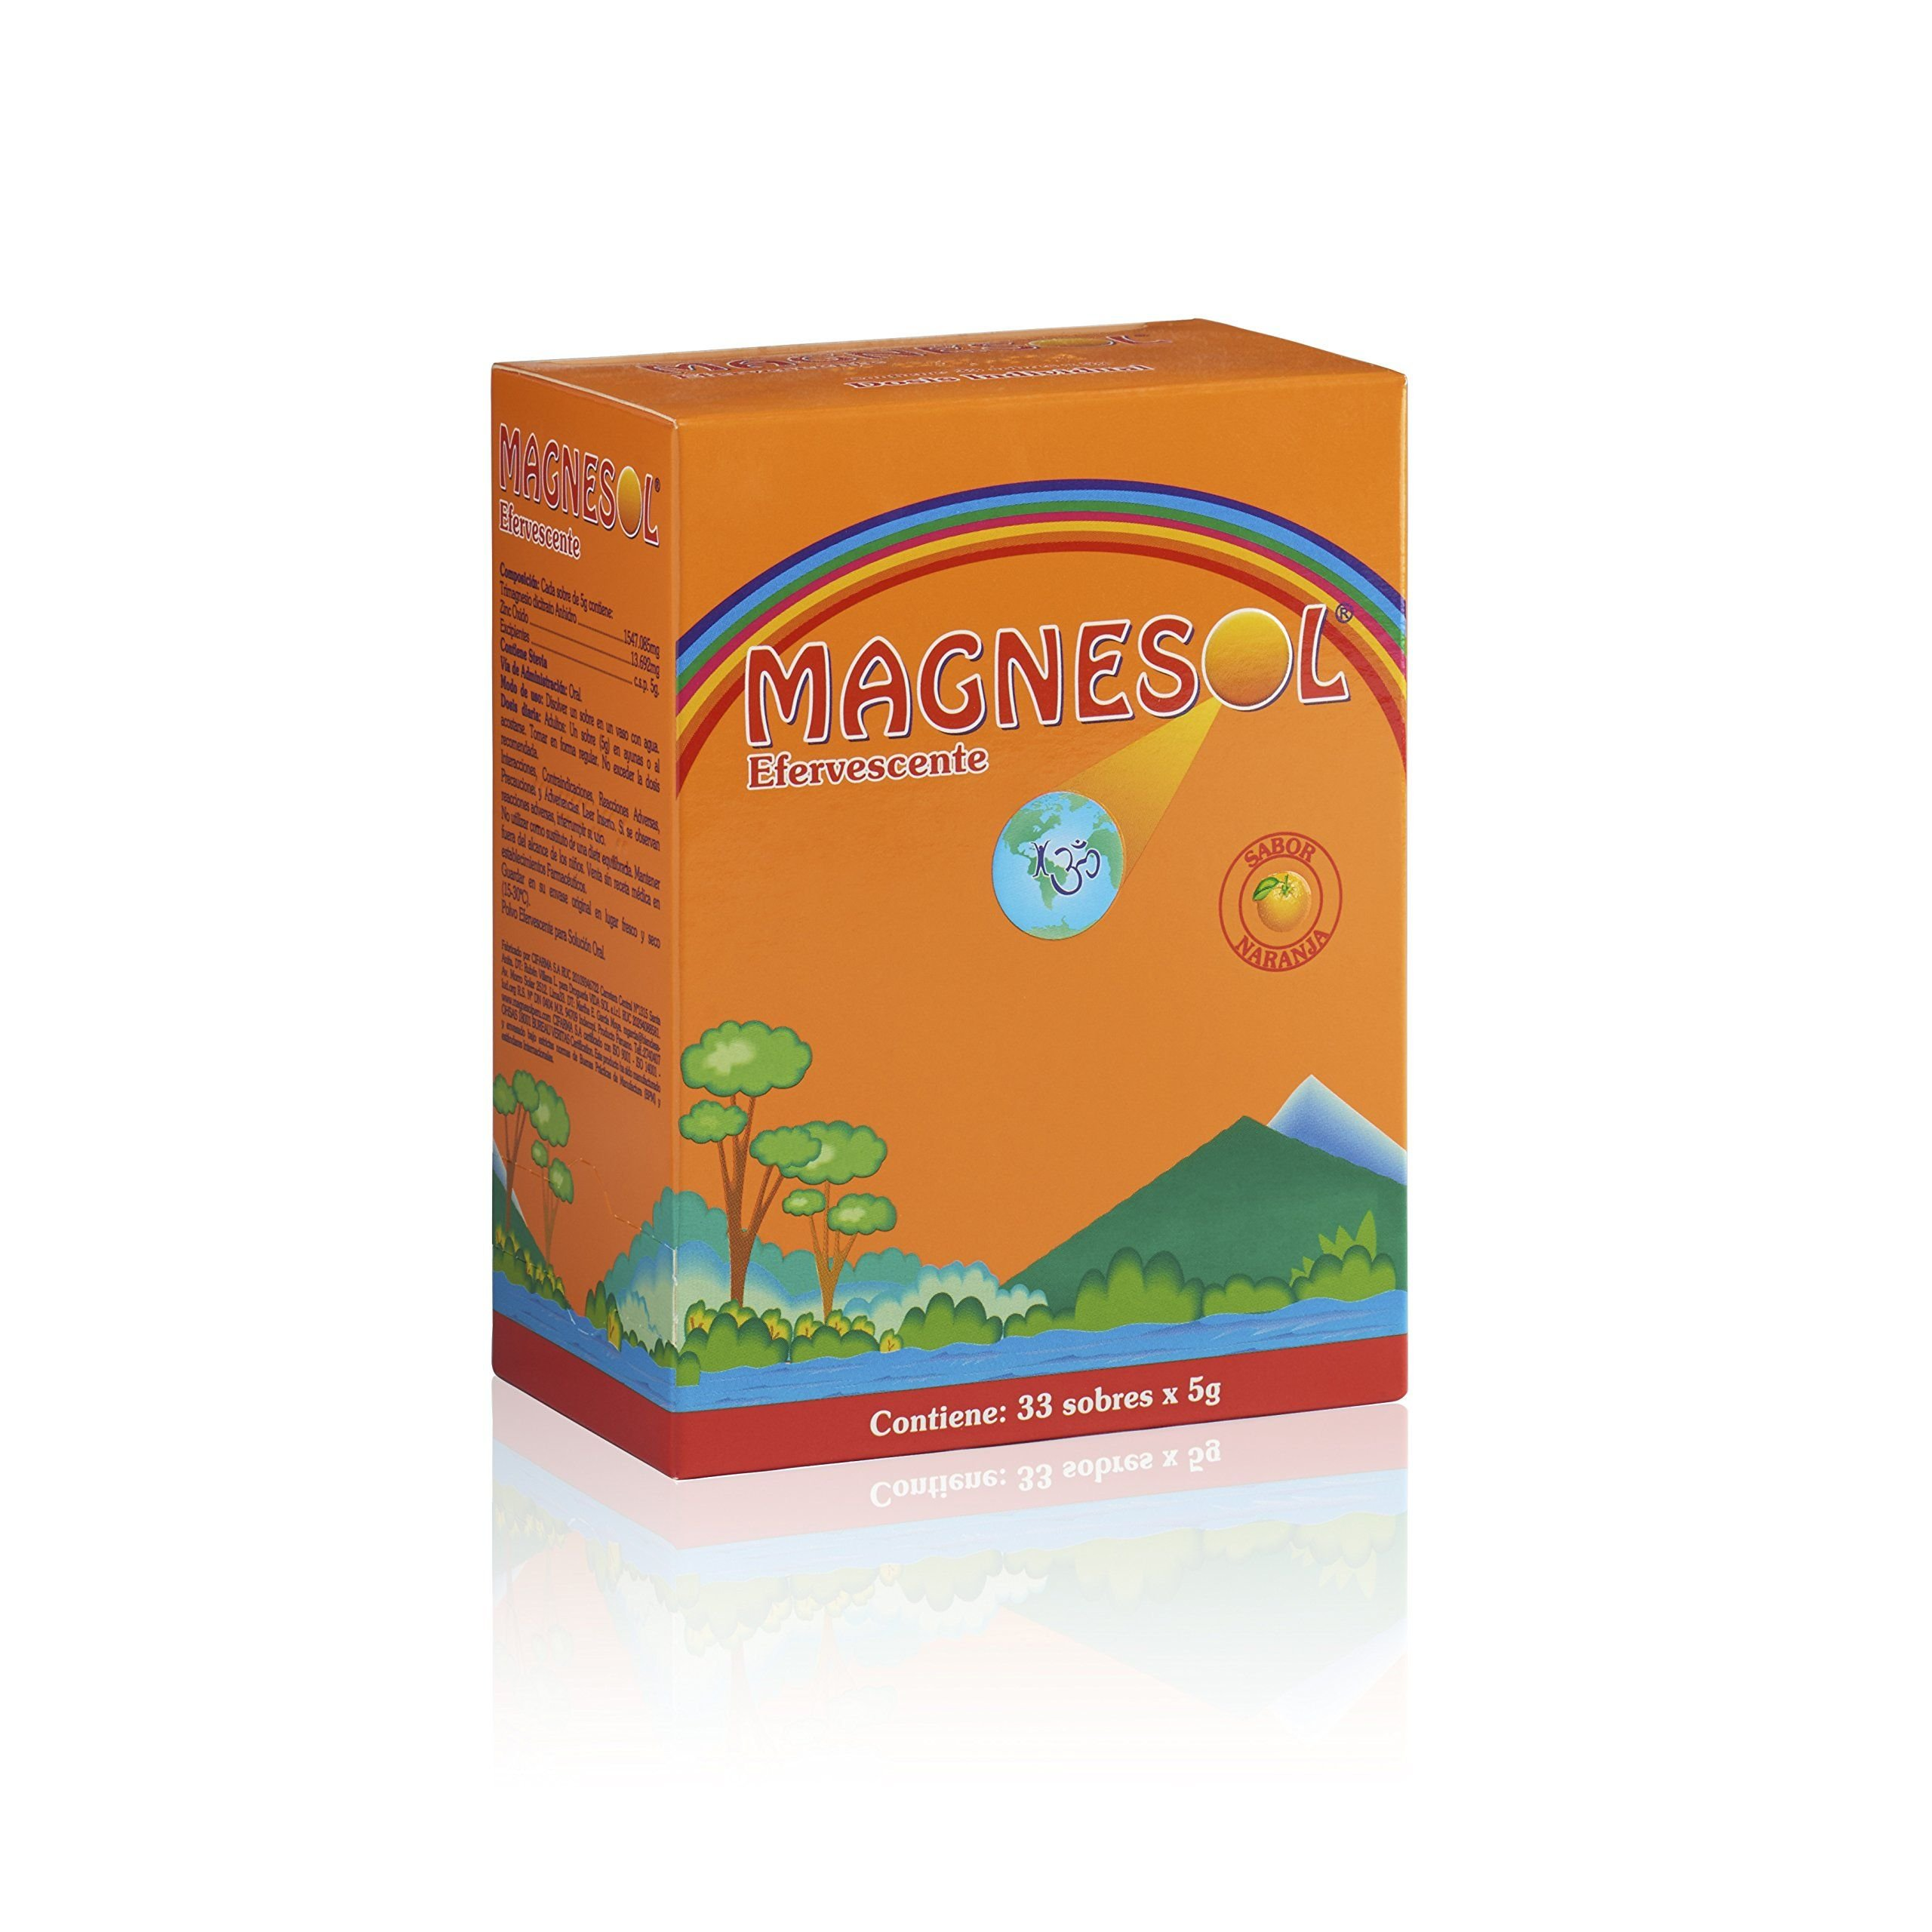 New Orange Flavor - Magnesol Magnesium Supplement - Magnesium Chloride with Zinc - Powder Form -